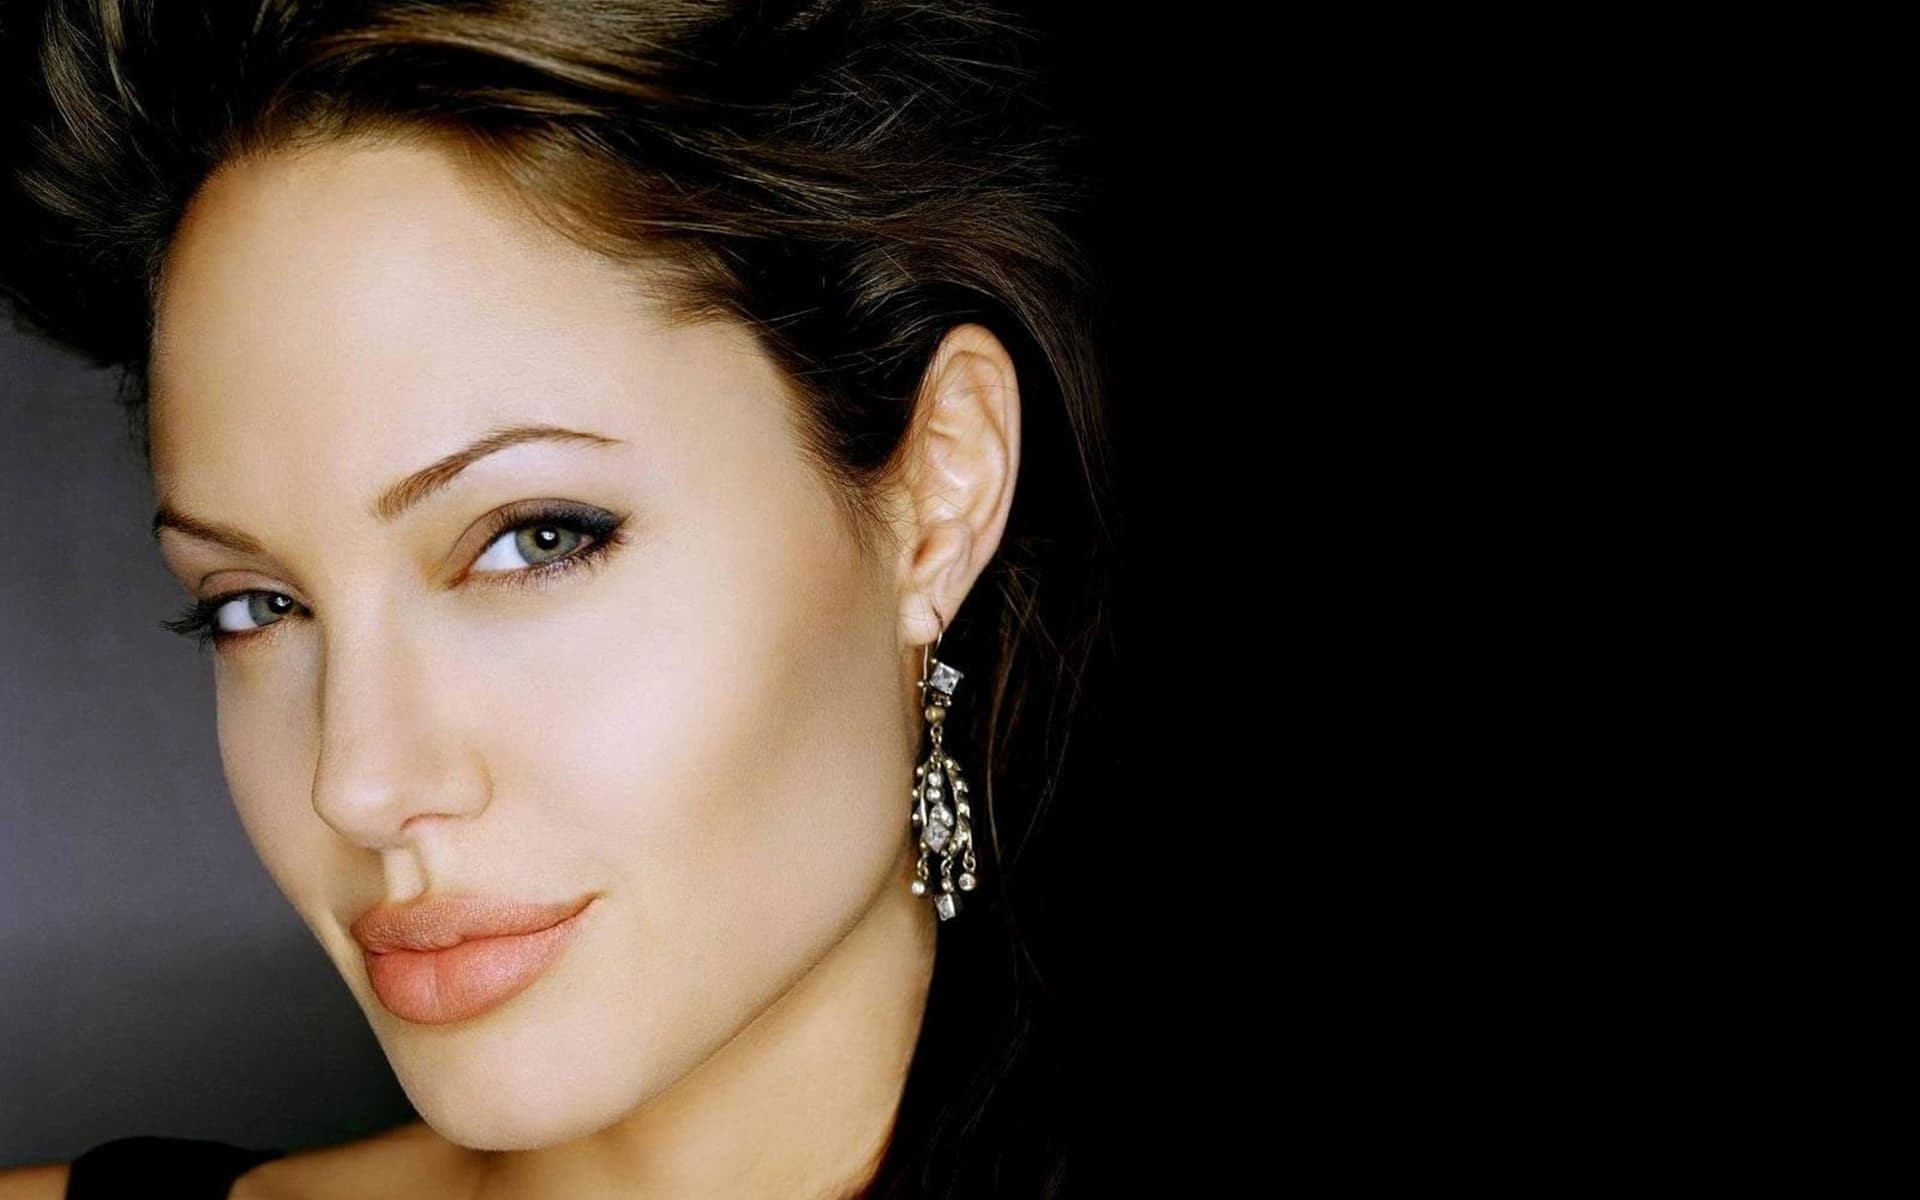 30 angelina jolie wallpapers high quality resolution download - Foto wallpeper ...